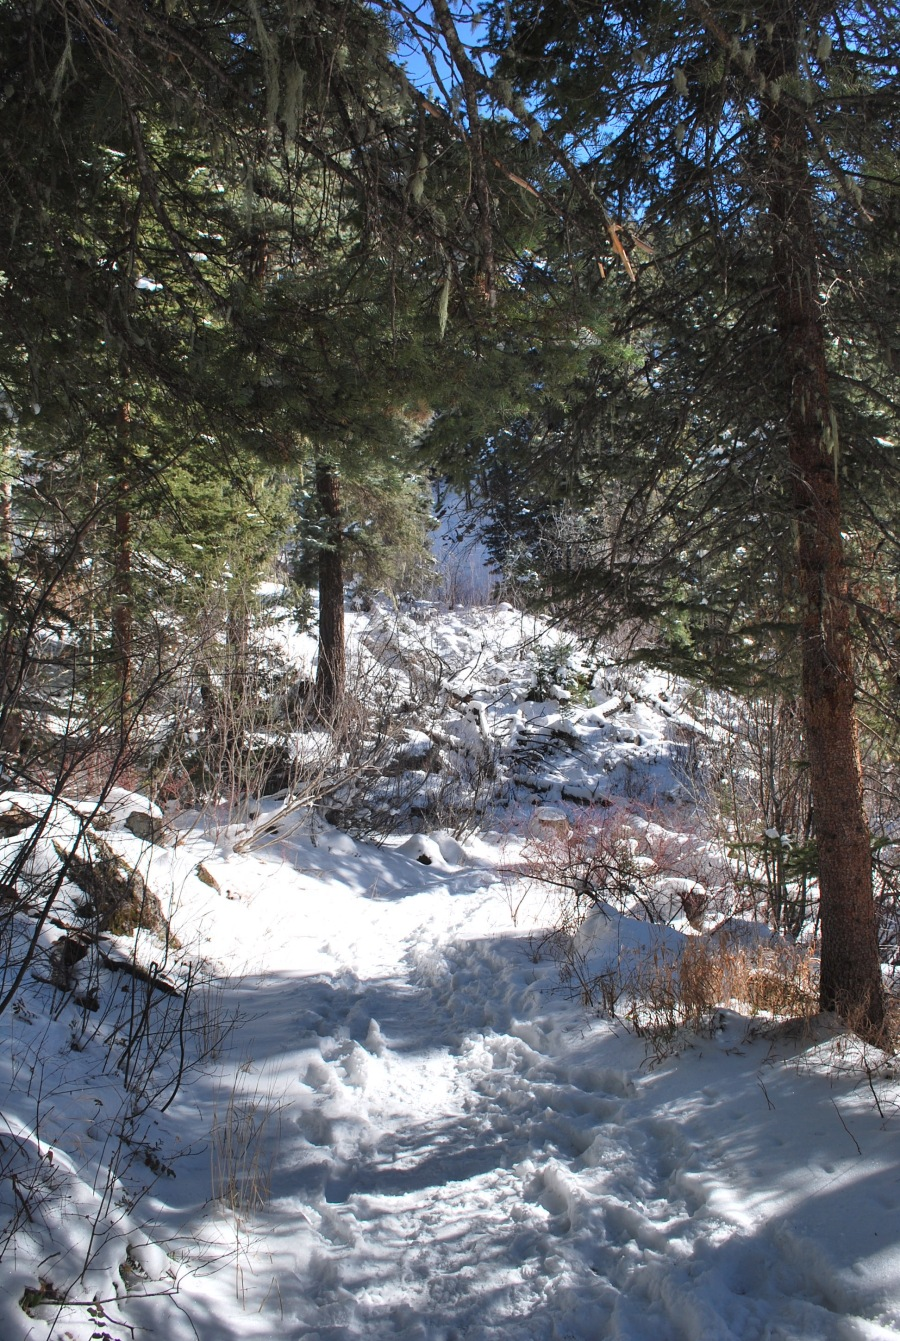 Hiking in Pagosa Springs in the winter